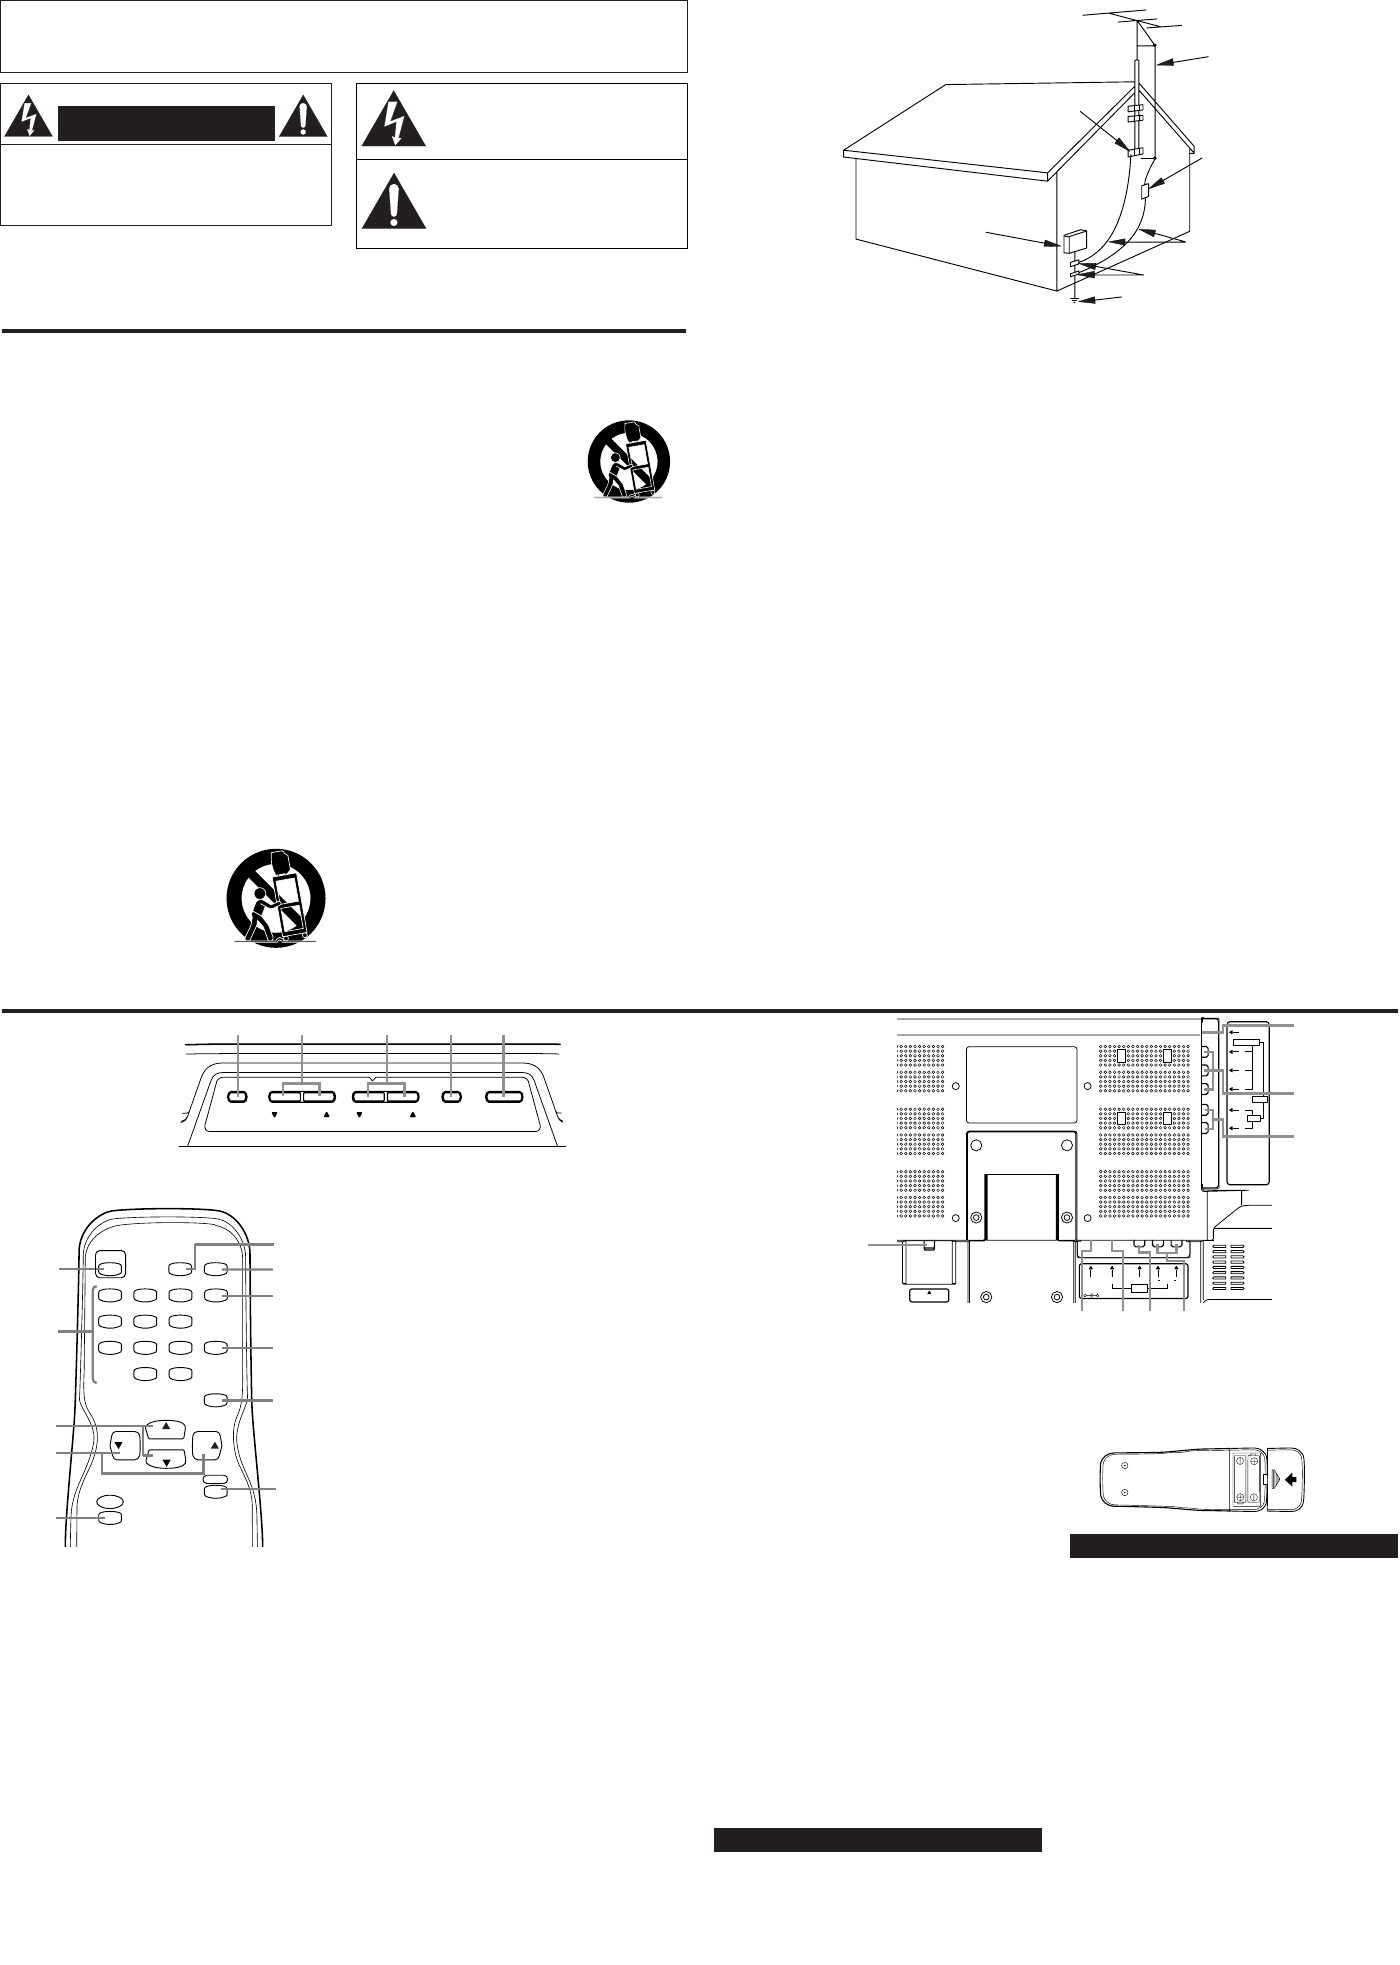 Page 2 of Emerson Flat Panel Television EWL1503 User Guide